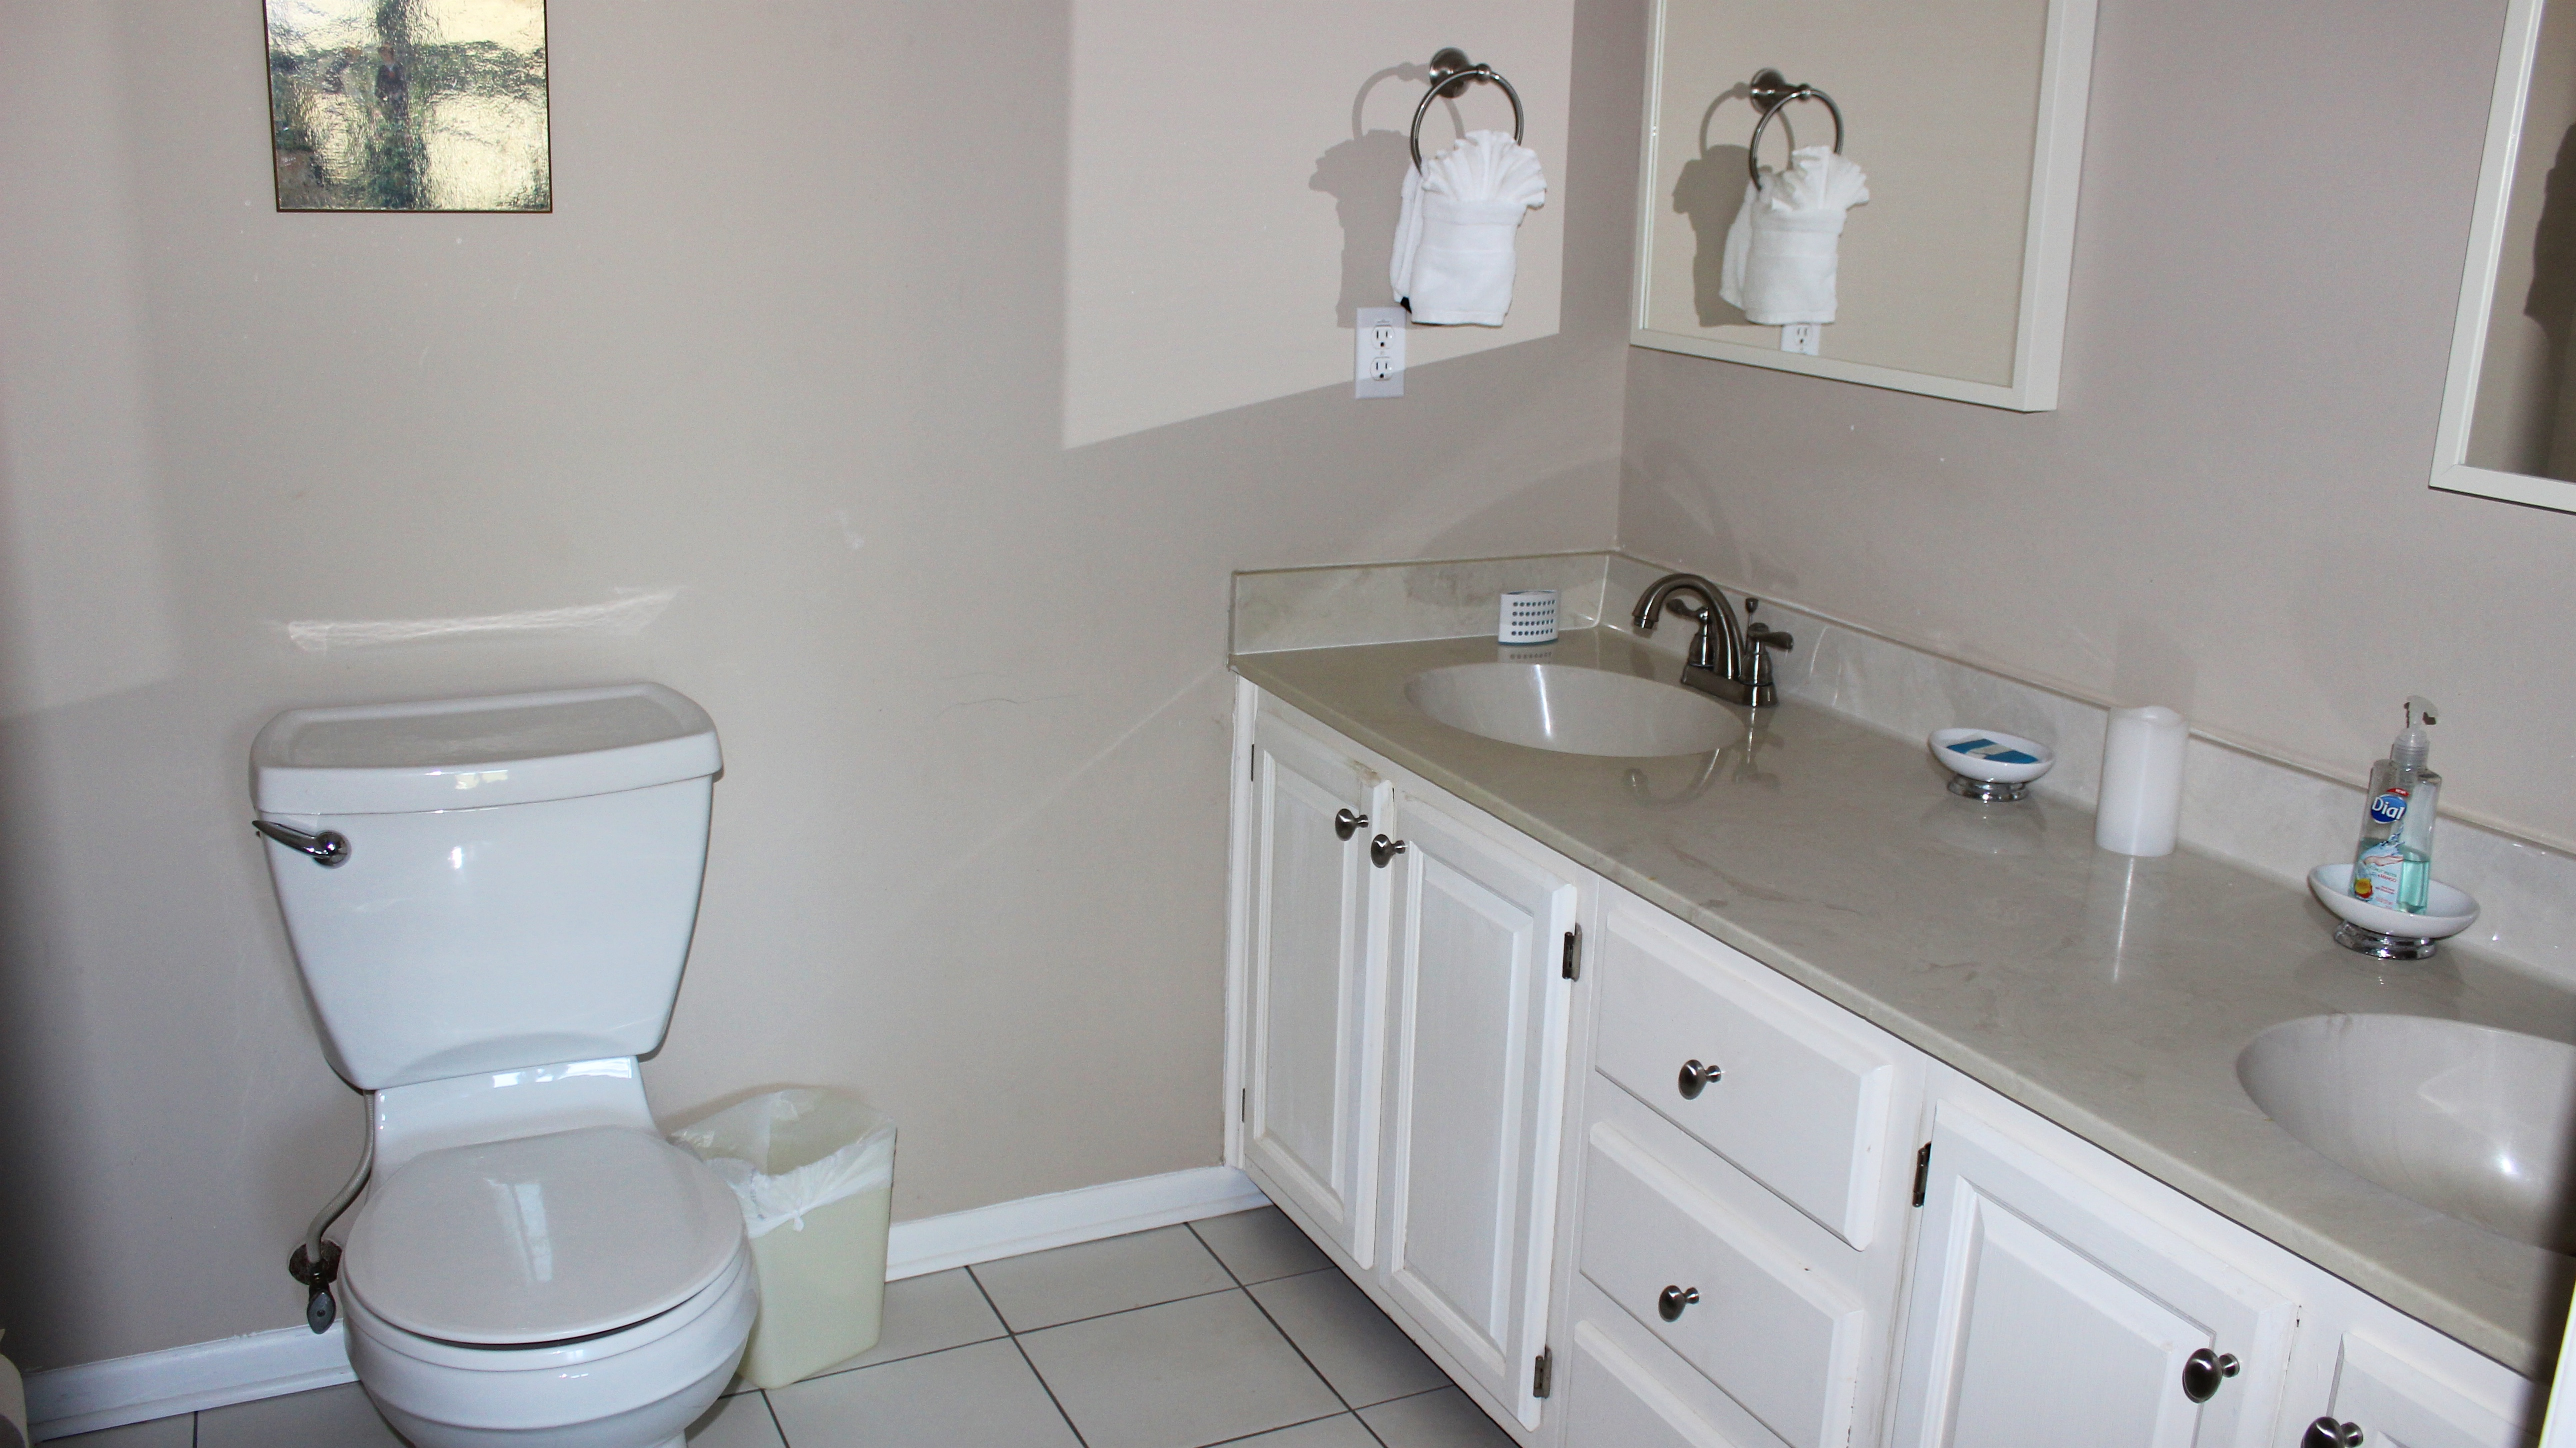 The master bathroom has also been renovated and has a large double vanity.